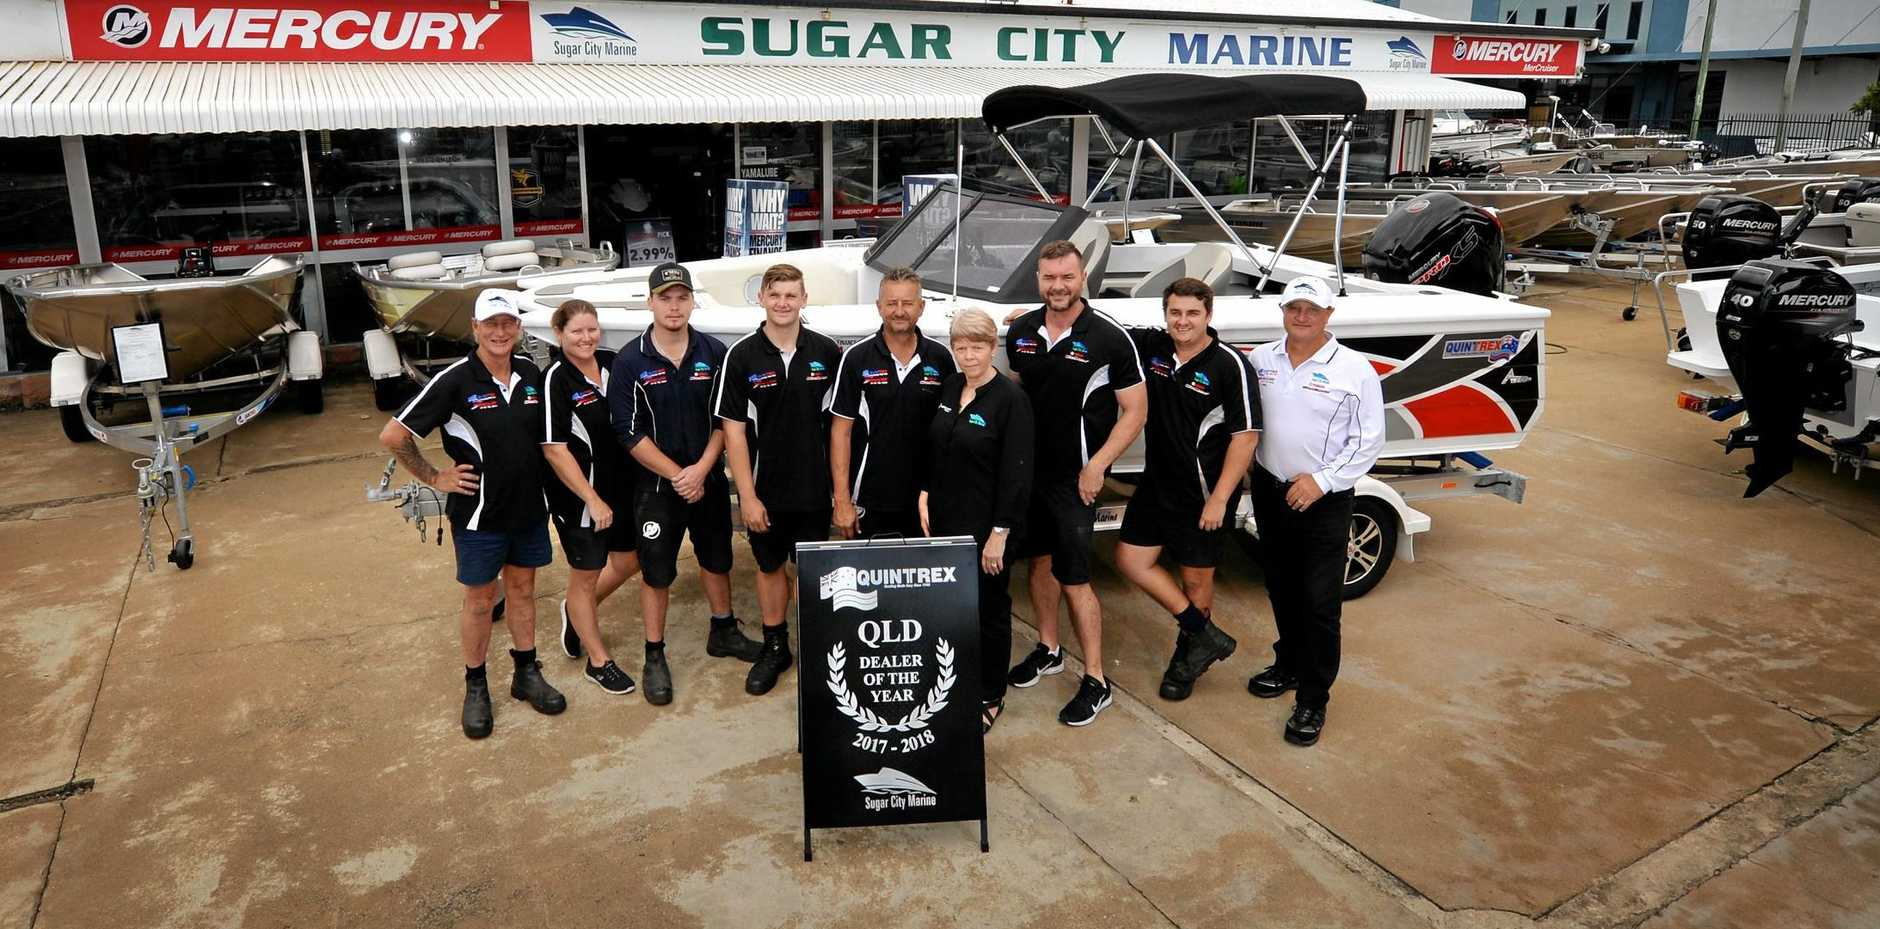 LEADING THE WAY: The team at Sugar City Marine in Victoria St is thrilled the business has been named the Quintrex Queensland Dealer of the Year.